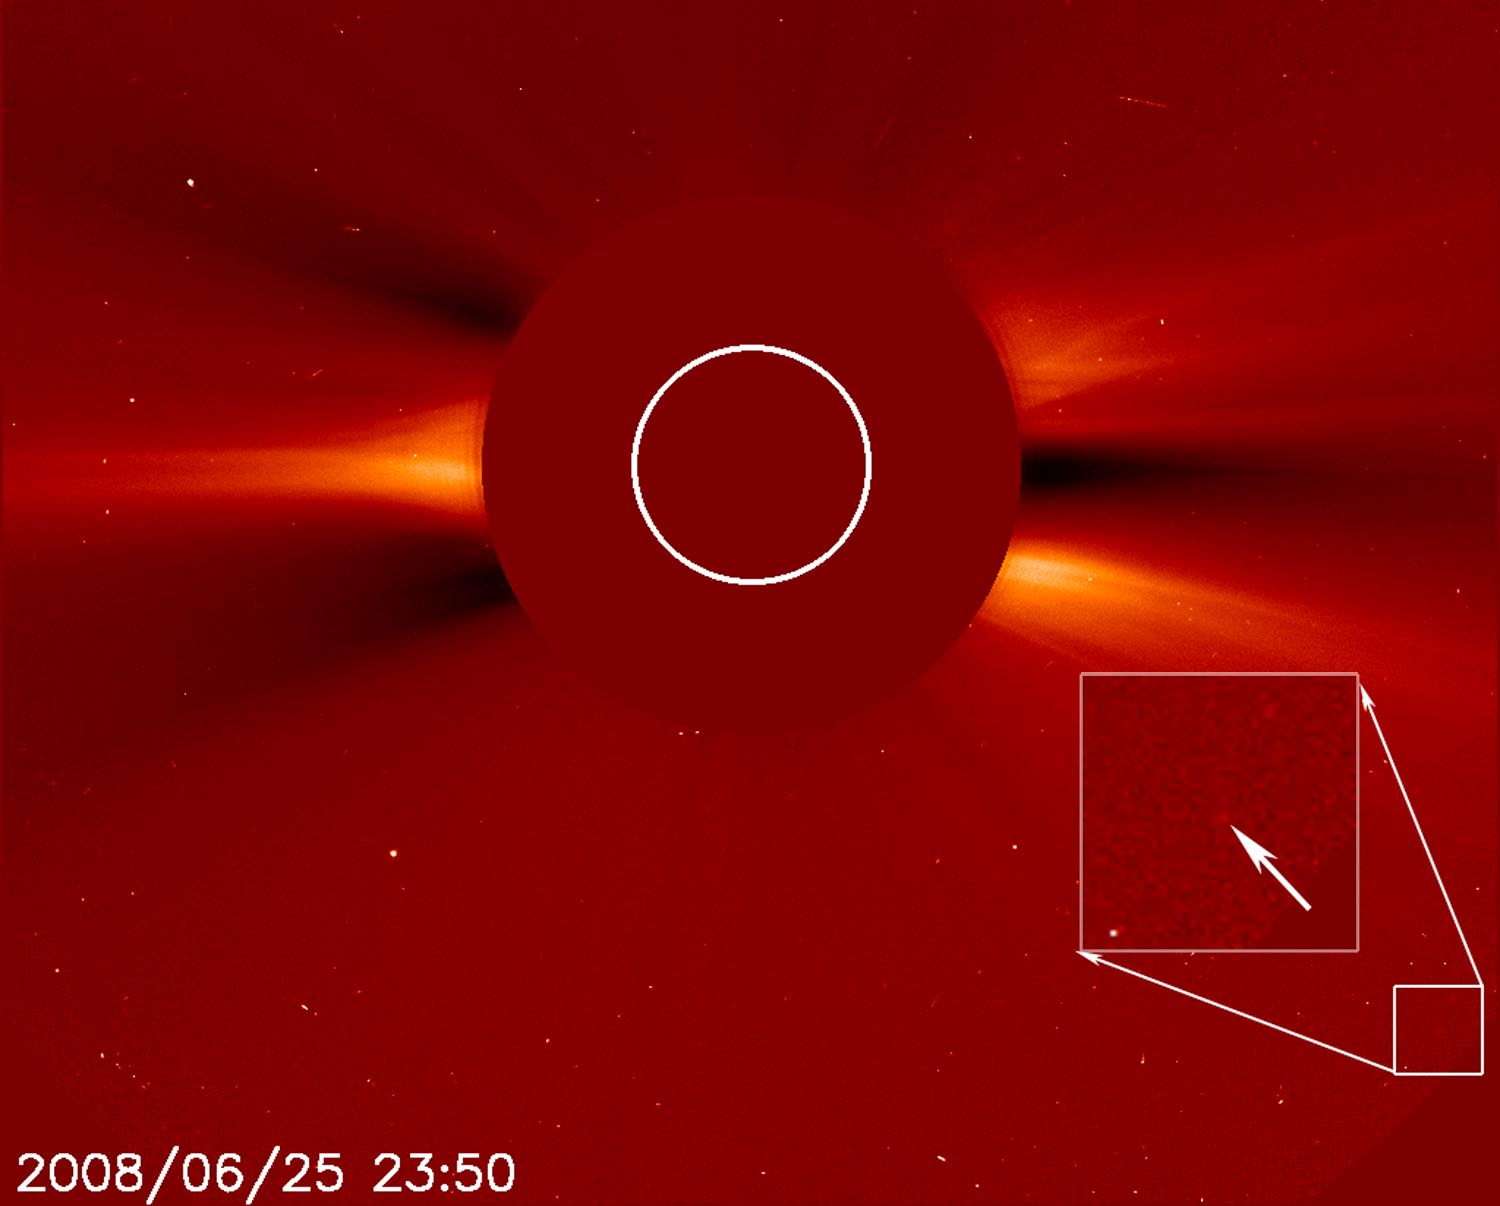 SOHO Celebrates 1,500th Comet Discovery | NASA